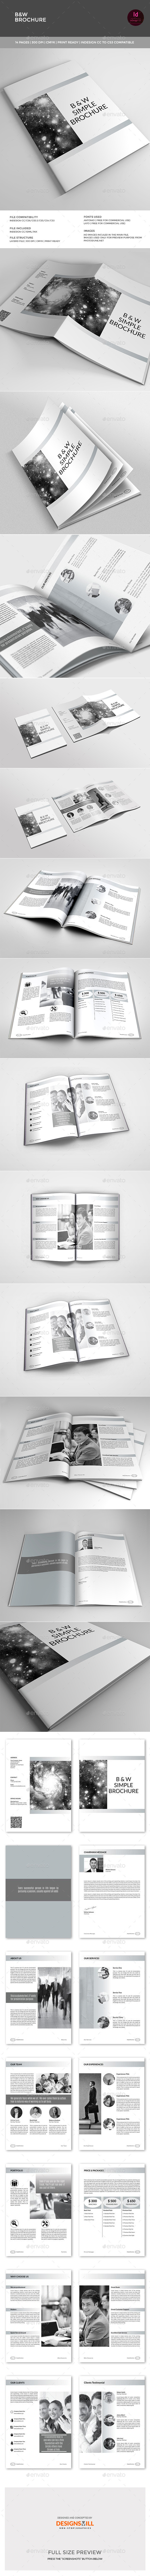 GraphicRiver Black & White Minimal Brochure 11180278